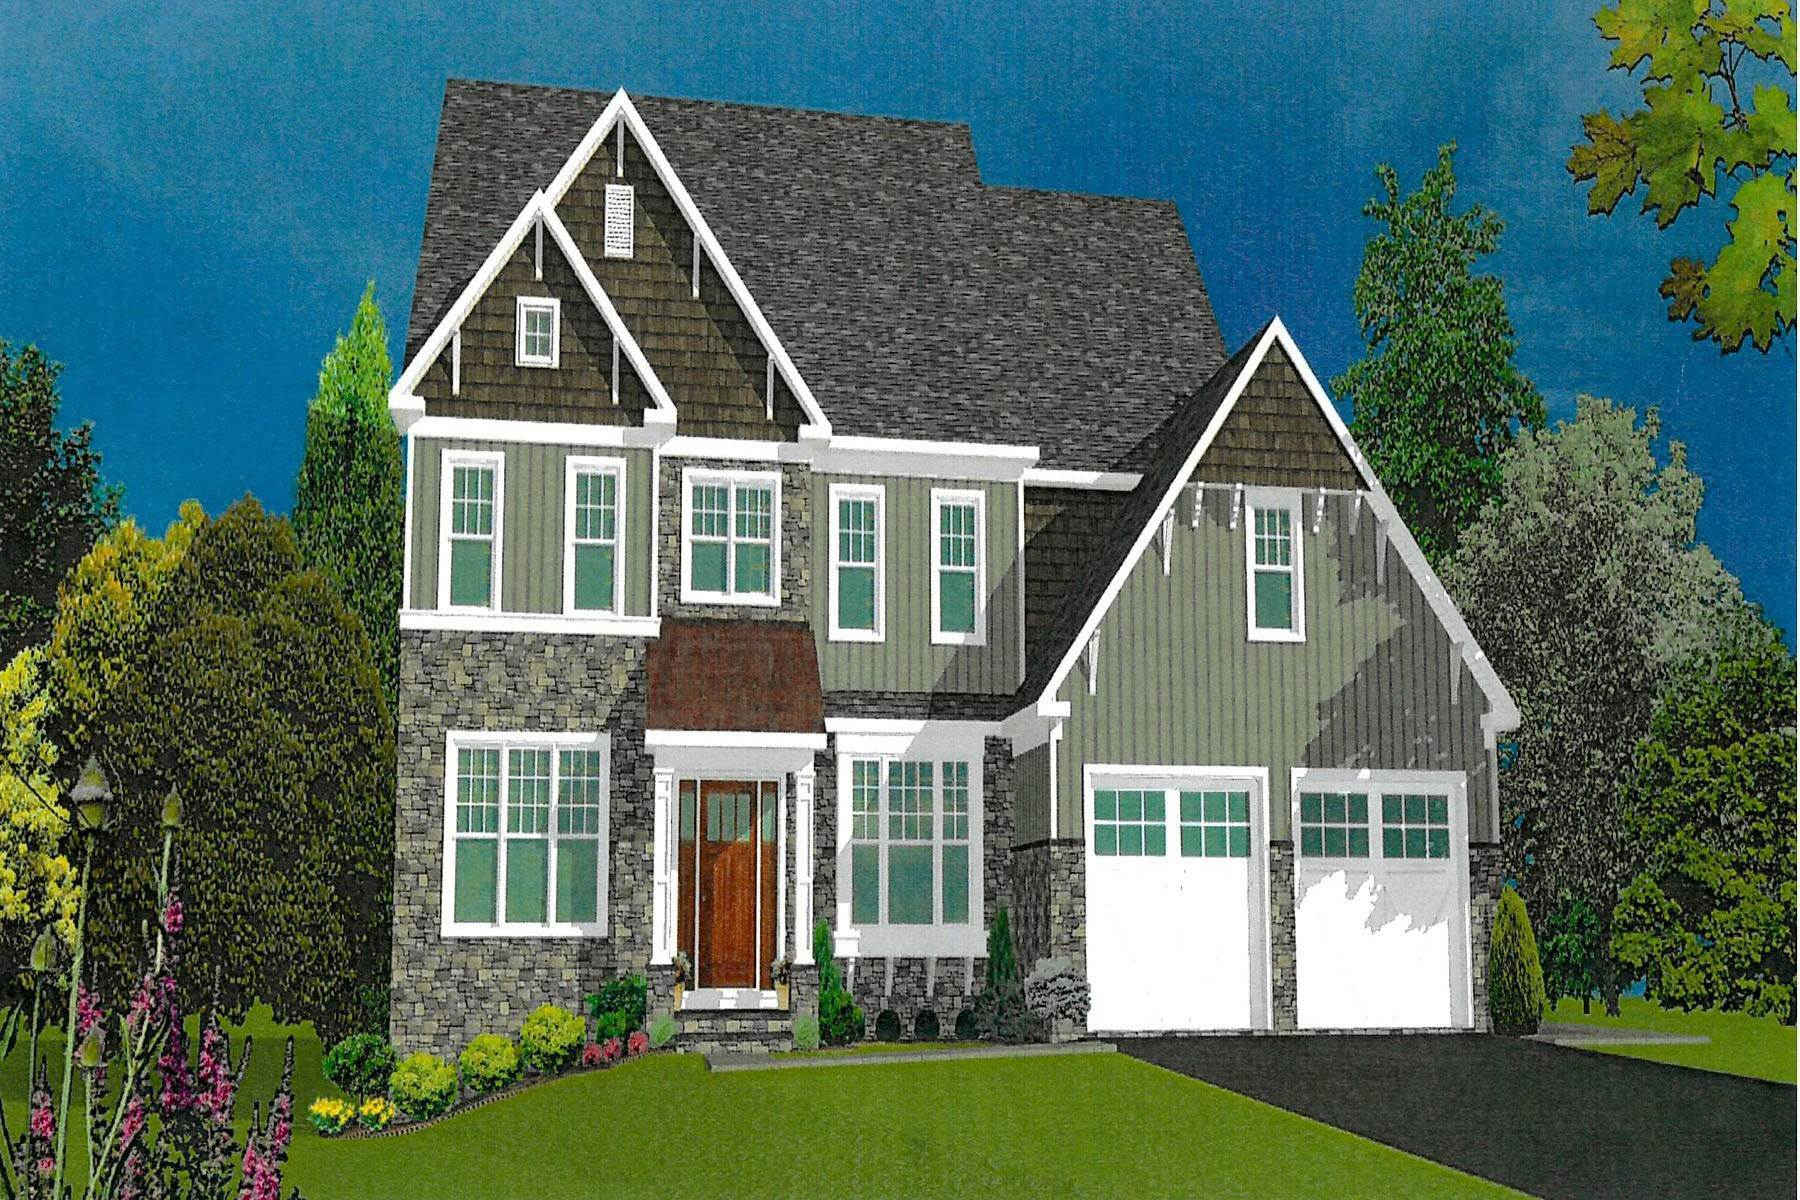 Single Family Homes for Sale at Westfield Model Amber Drive Lititz, Pennsylvania 17543 United States